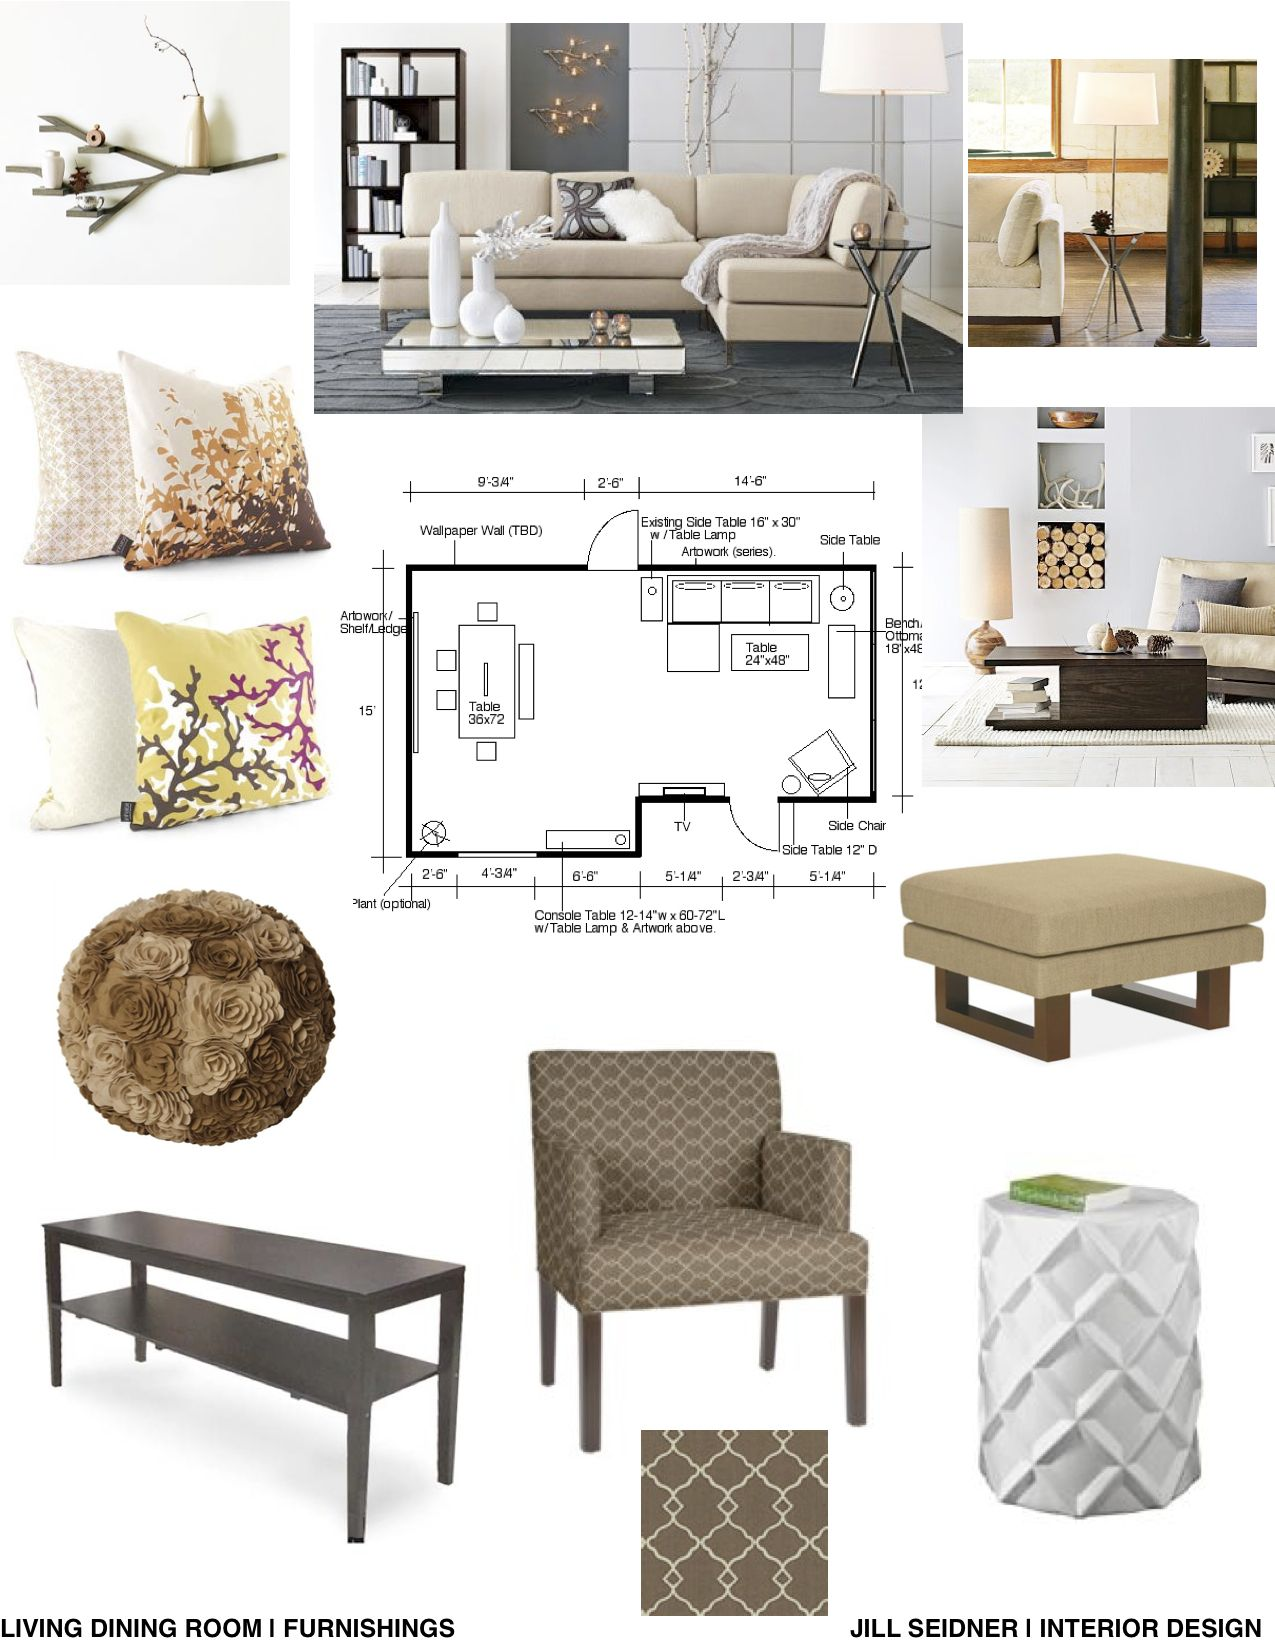 Furnishings Concept Board For An Apartment Living And Dining Room